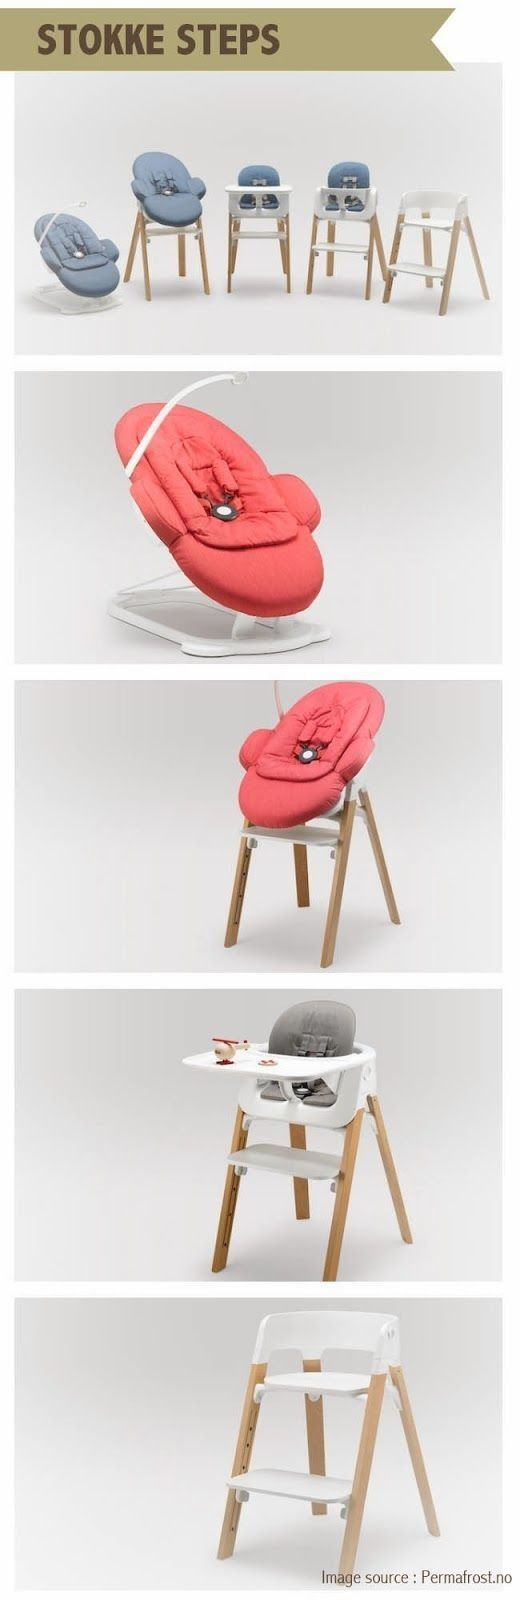 Baby eating chair attached to table - Stokke Steps Chair The Innovative Chair That Grows With Your Baby From Newborn To Ten